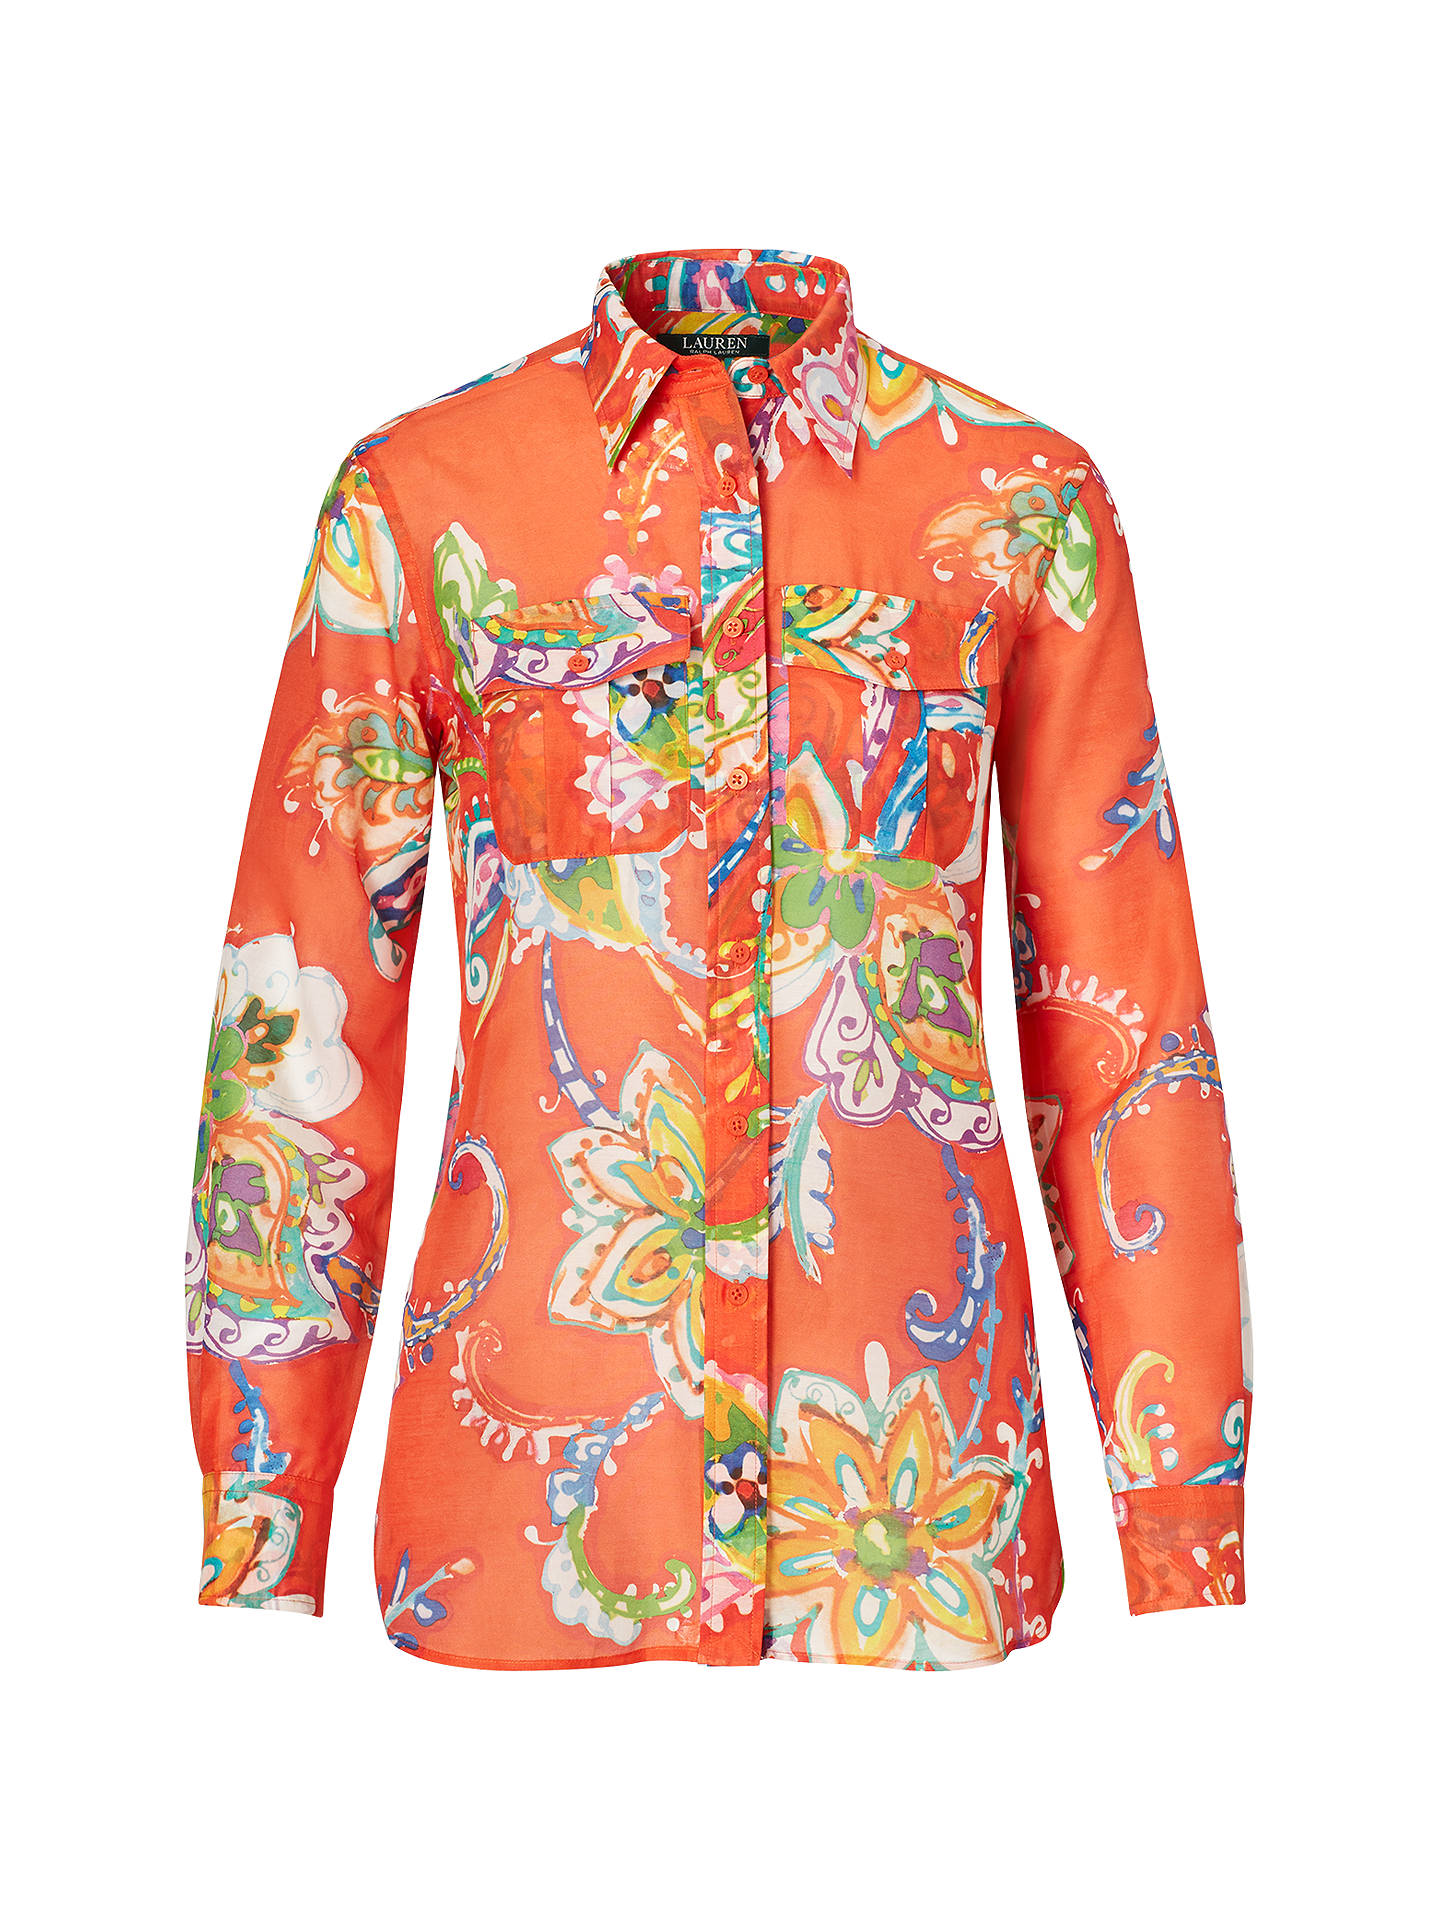 lauren ralph lauren floral cotton silk voile shirt  orange multi at john lewis  u0026 partners